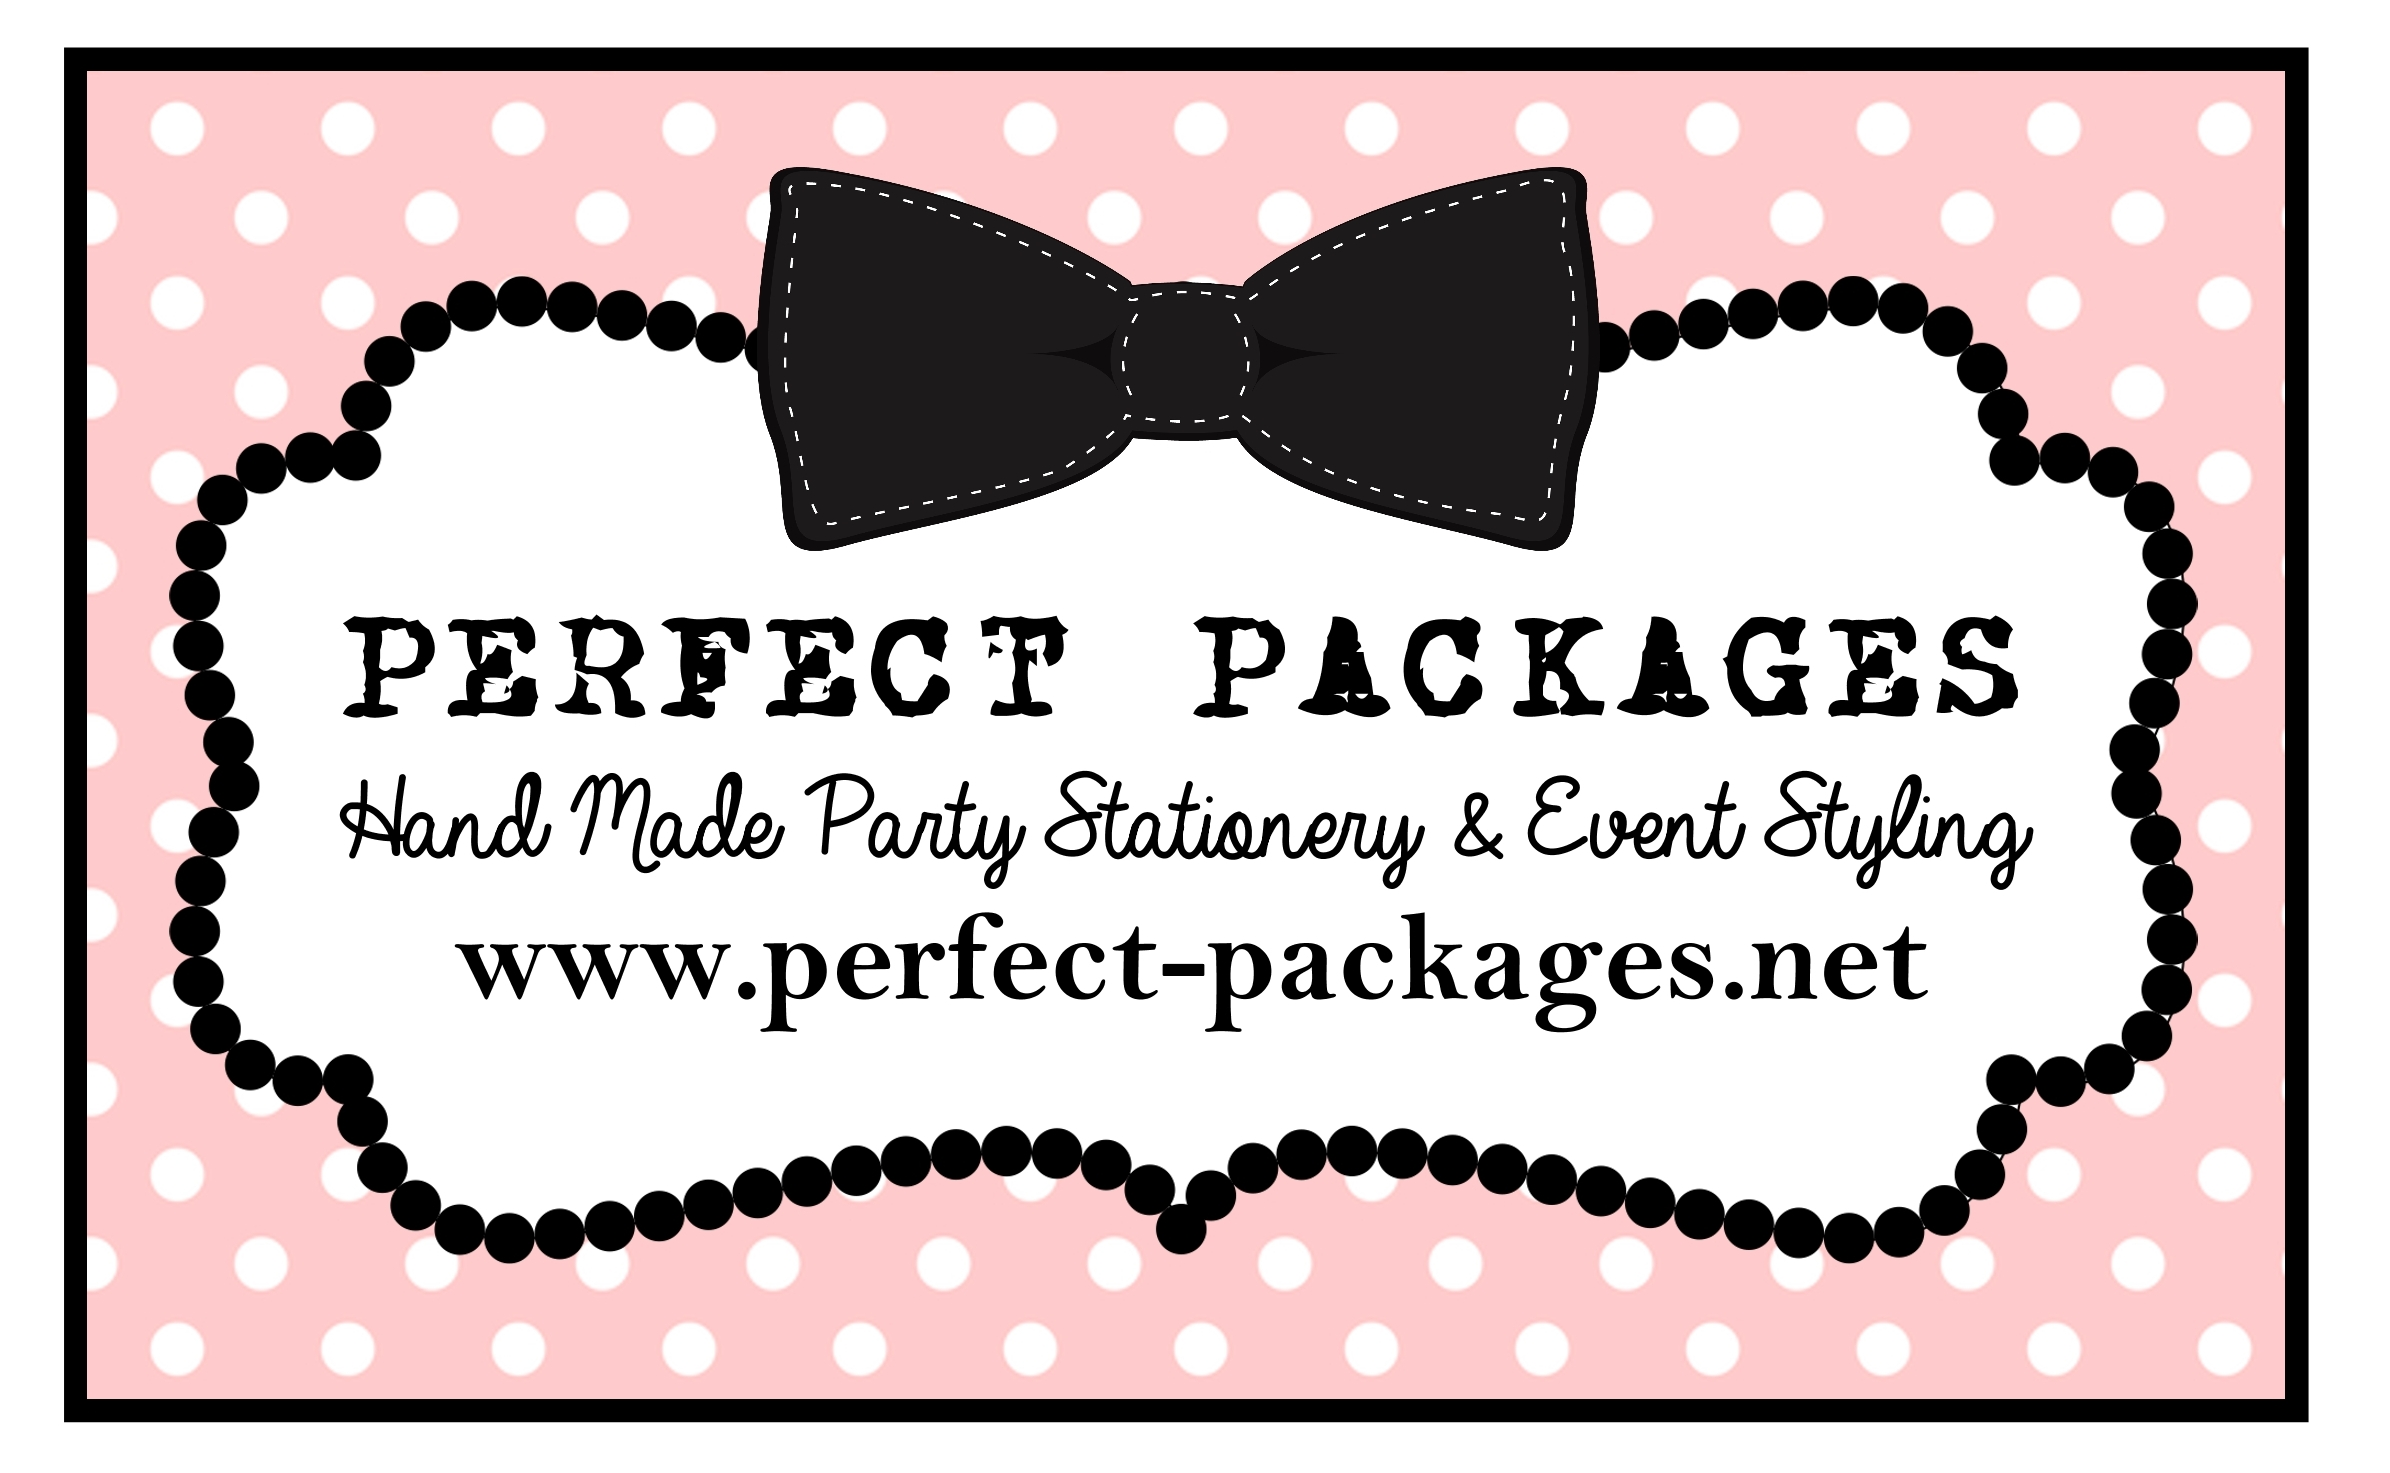 Perfect Packages